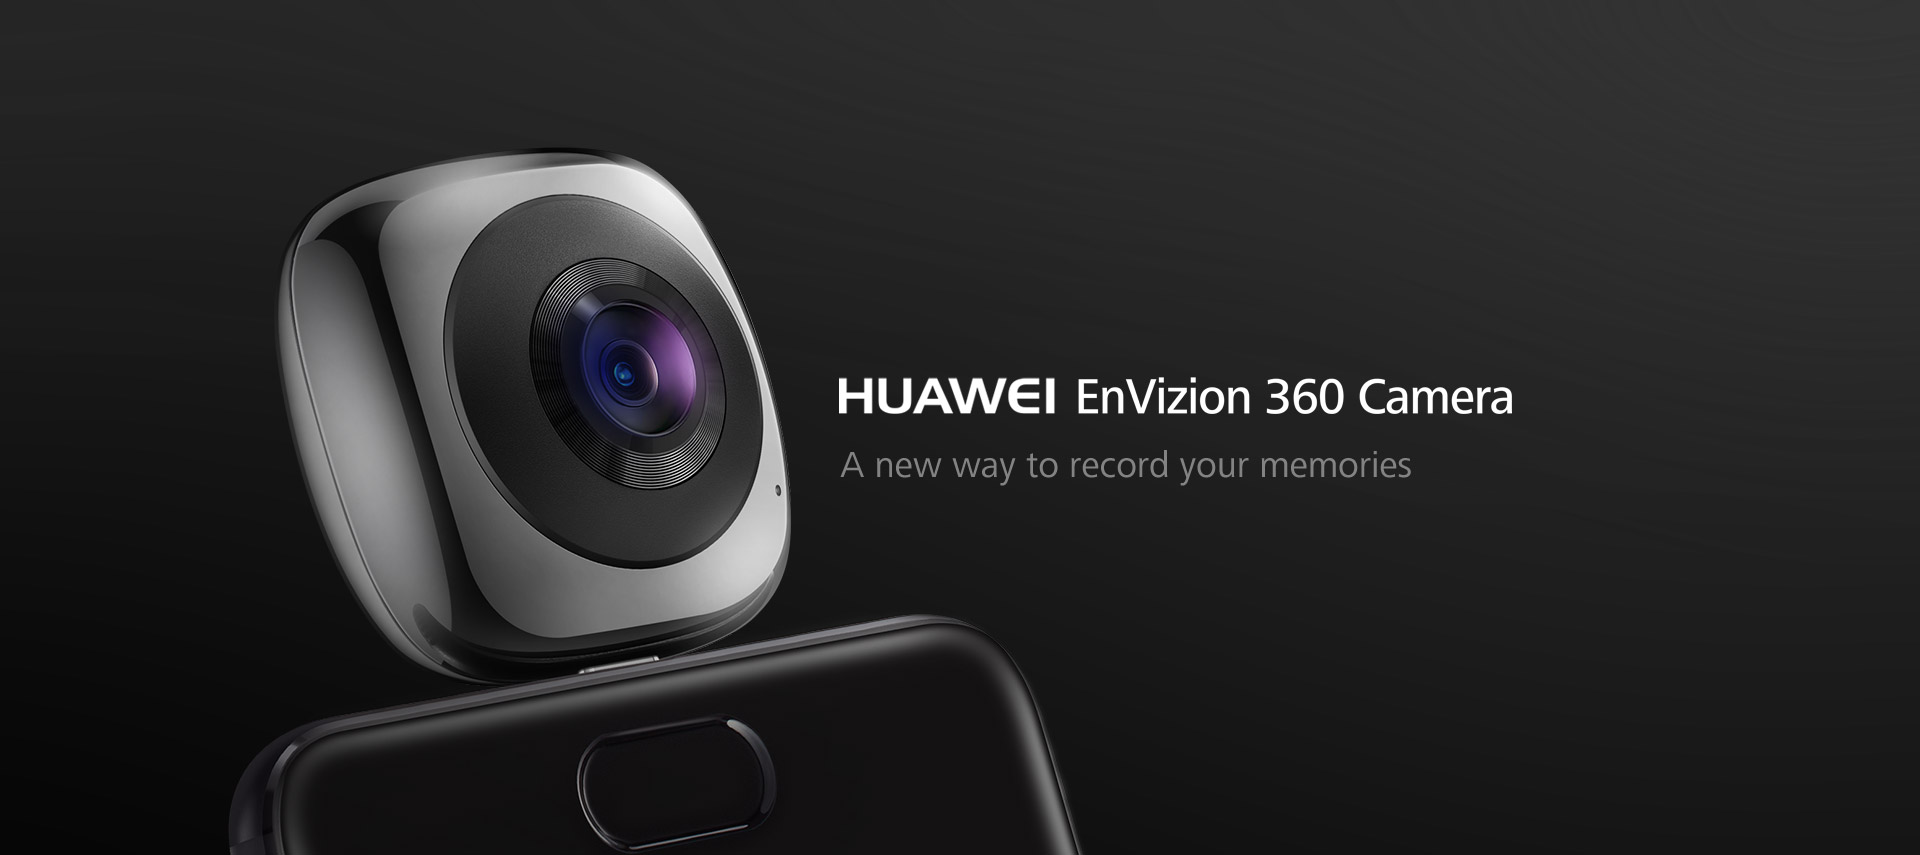 huawei envizion 360 camera  vr  fish eye  360 panoramic